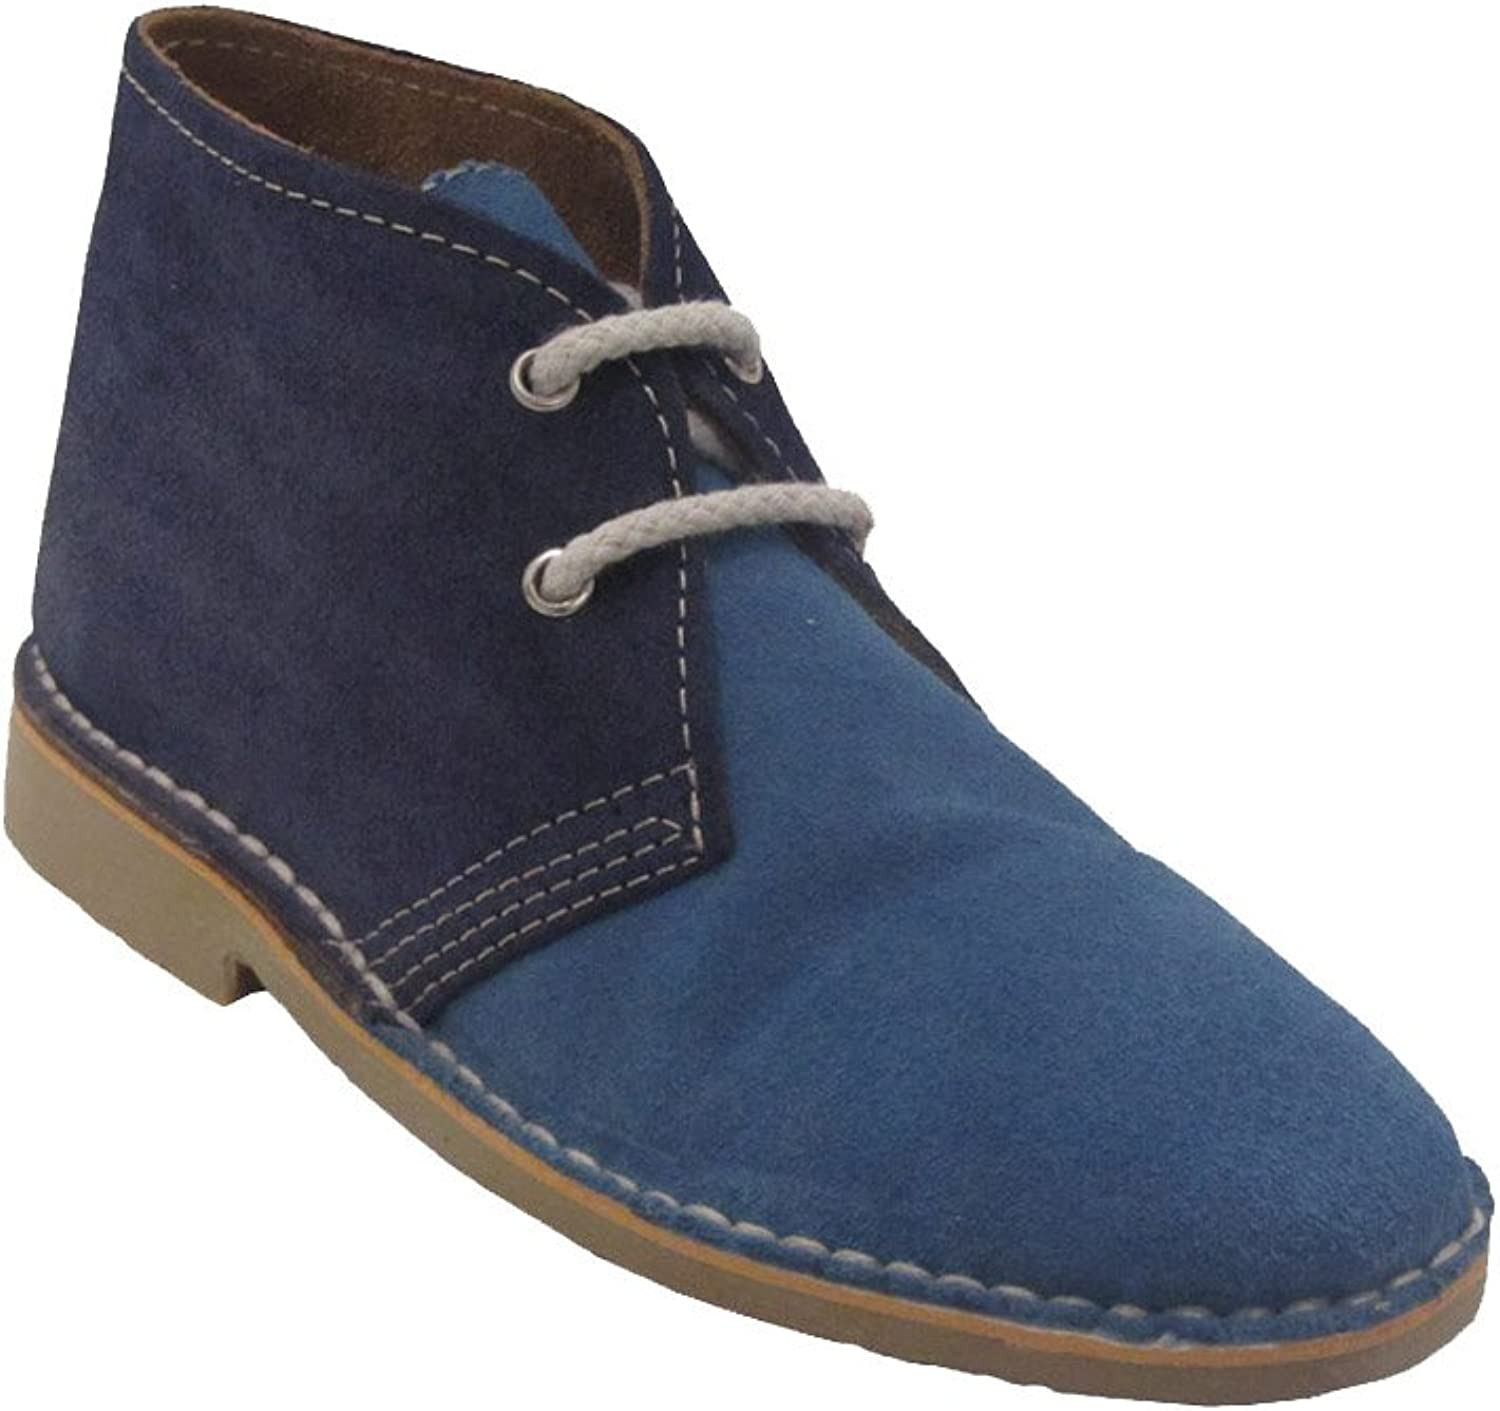 La Auténtica K1002C - Desert Boot Italian tip with Two colors, Unisex Adult, bluee Night - Navy bluee